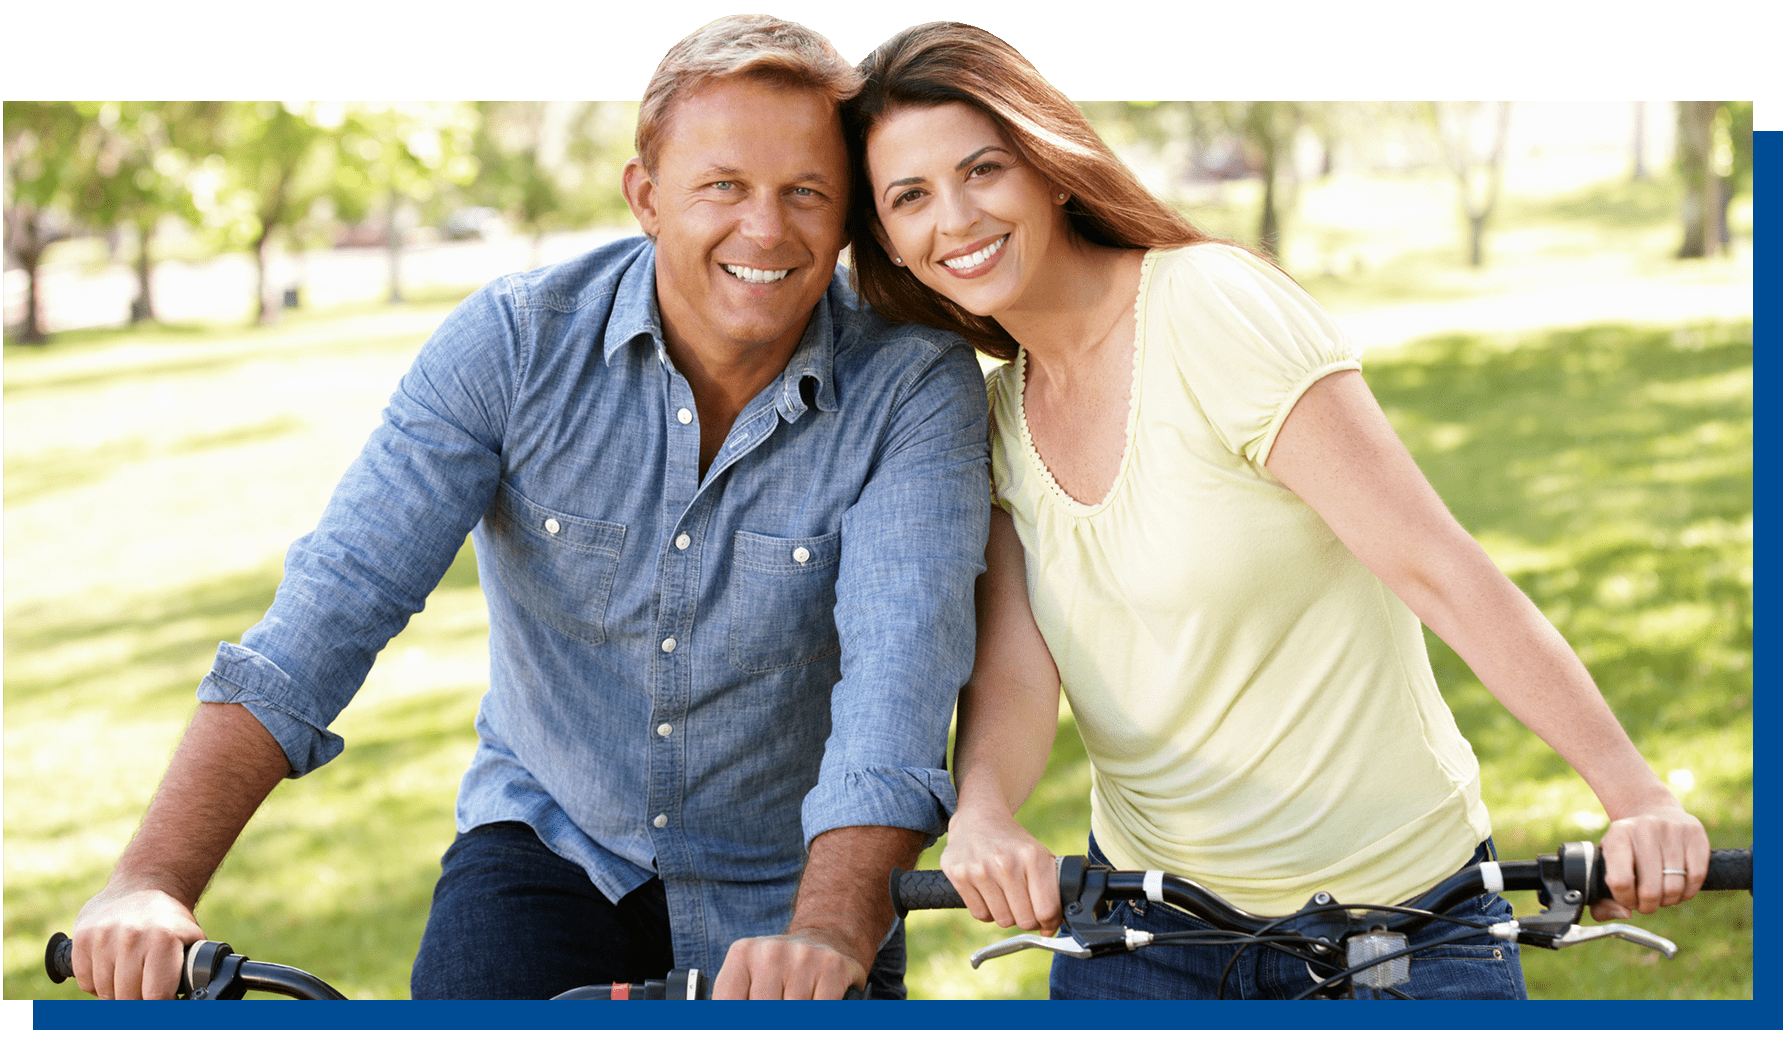 Couple on bikes together